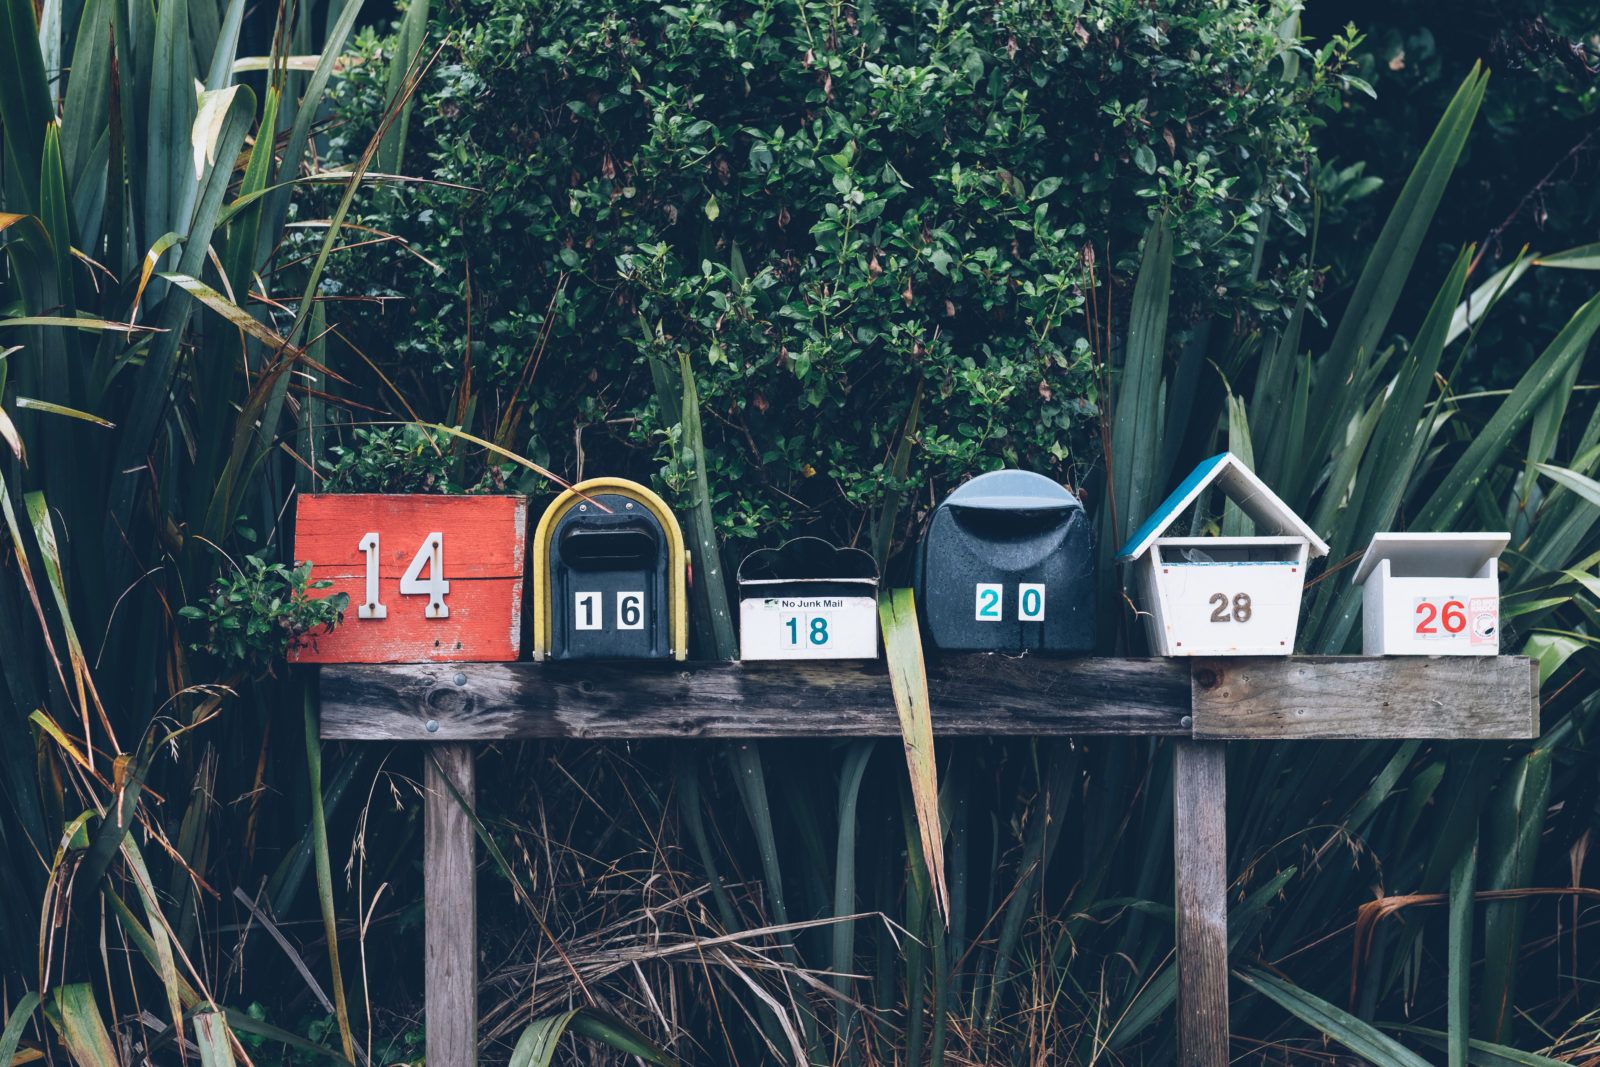 A row of colorful and quirky mailboxes